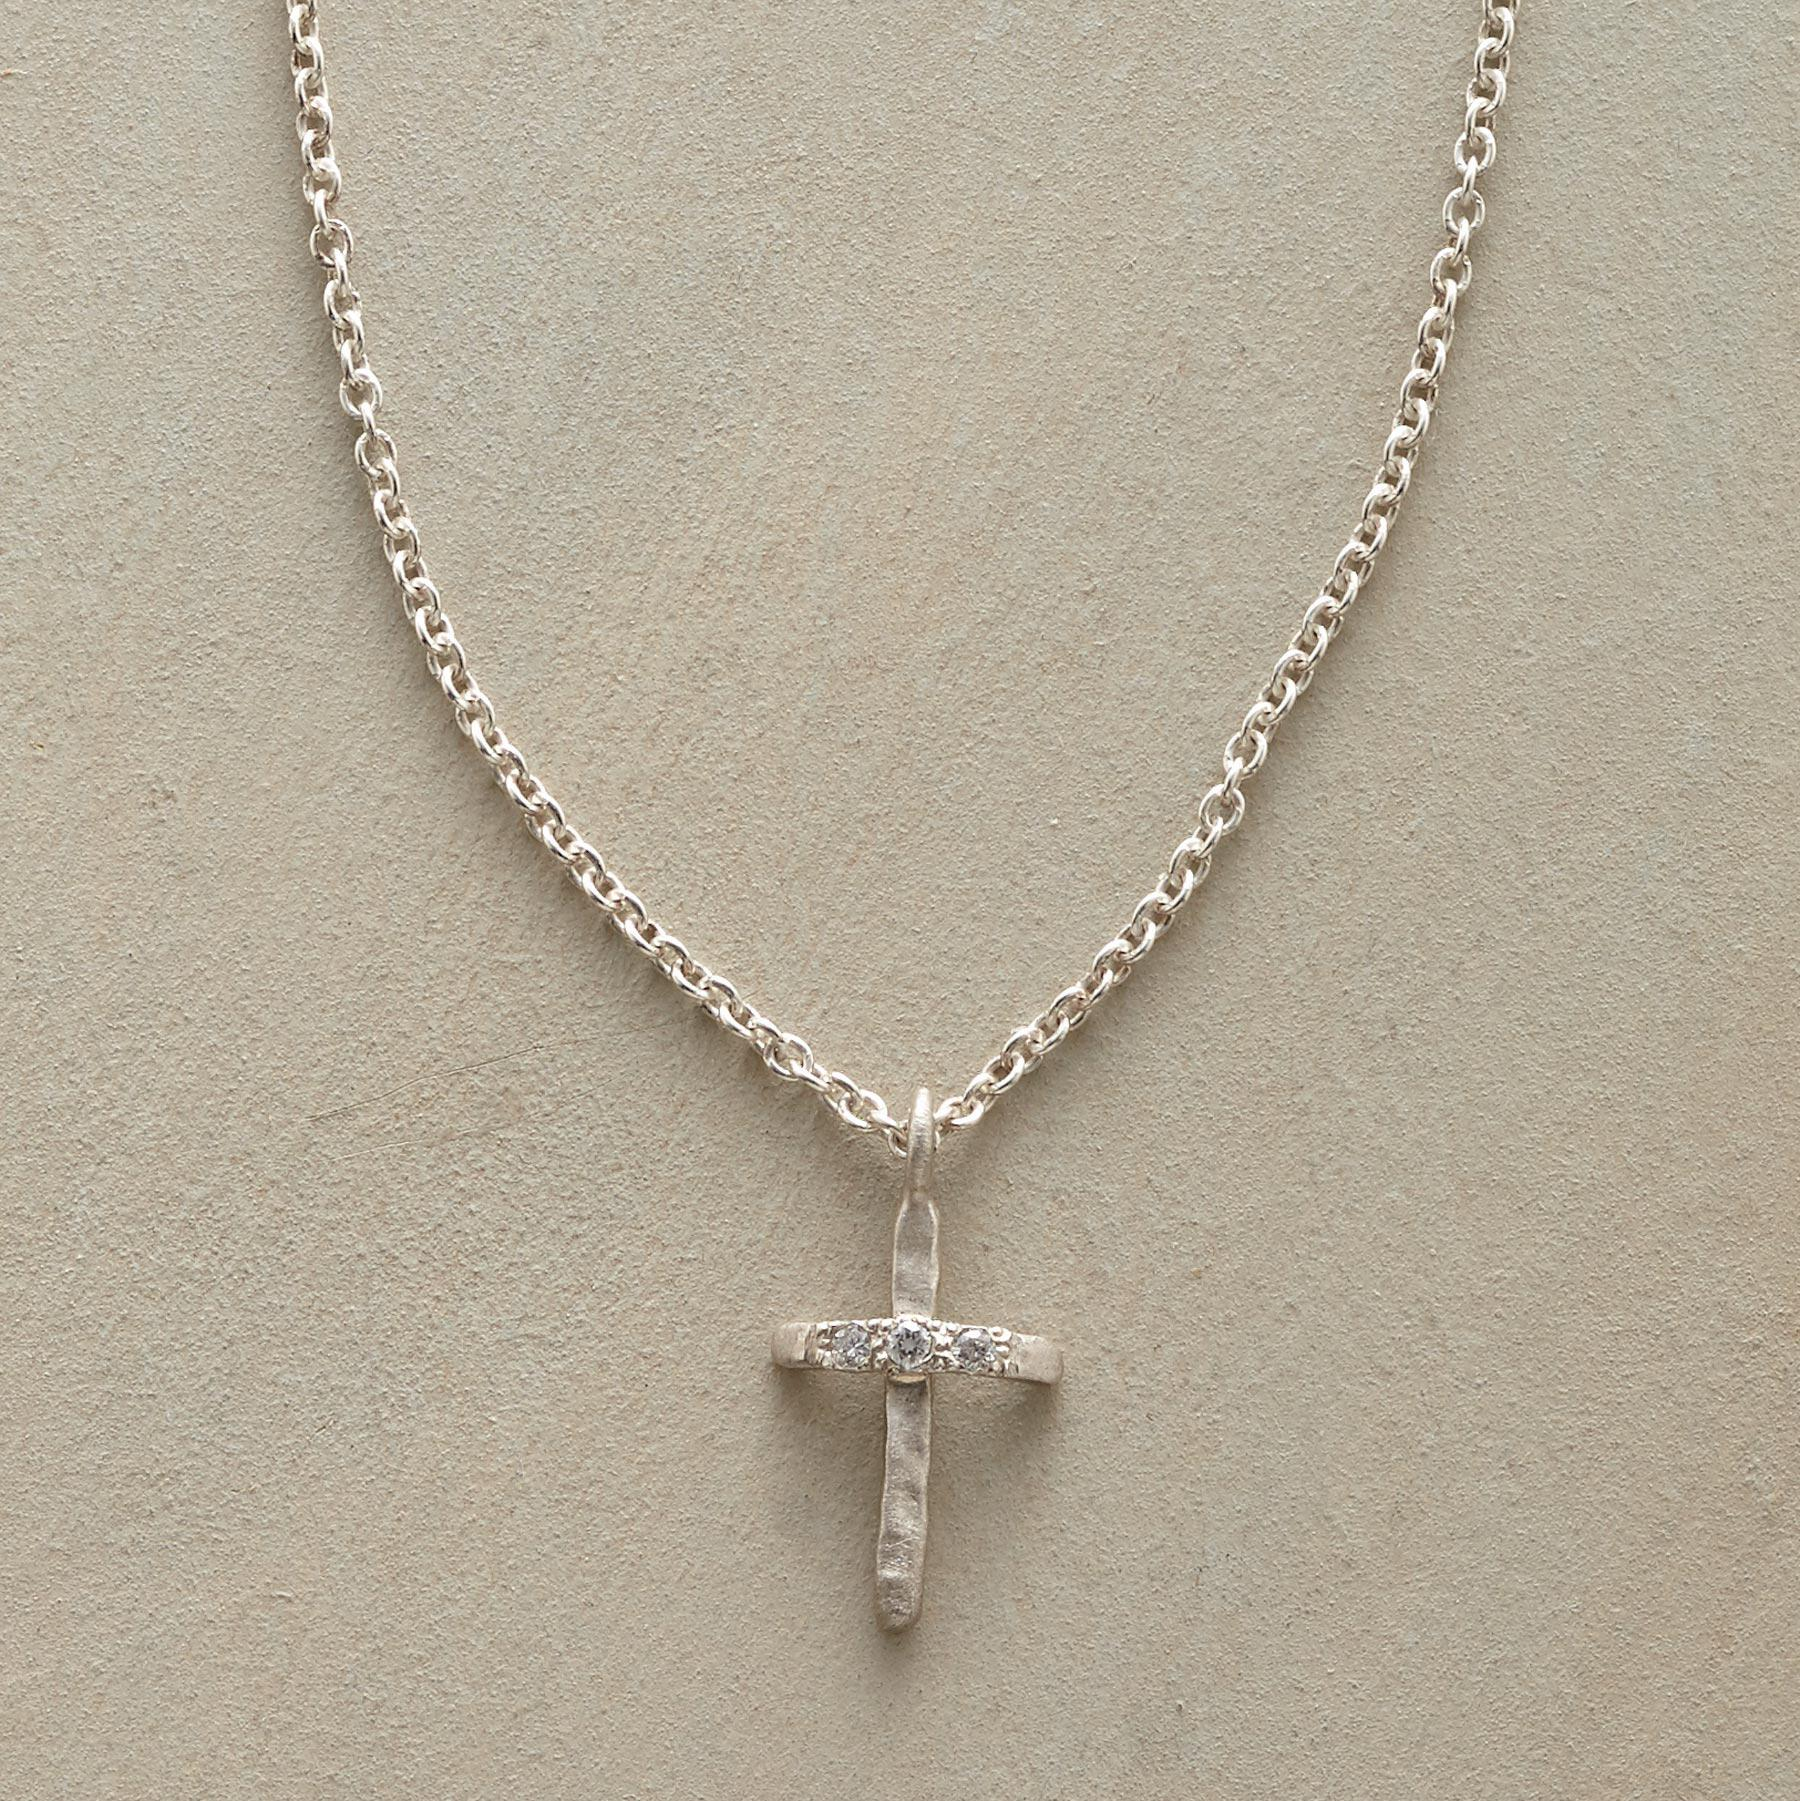 Rebecca Lankford Diamond-kissed Cross Necklace